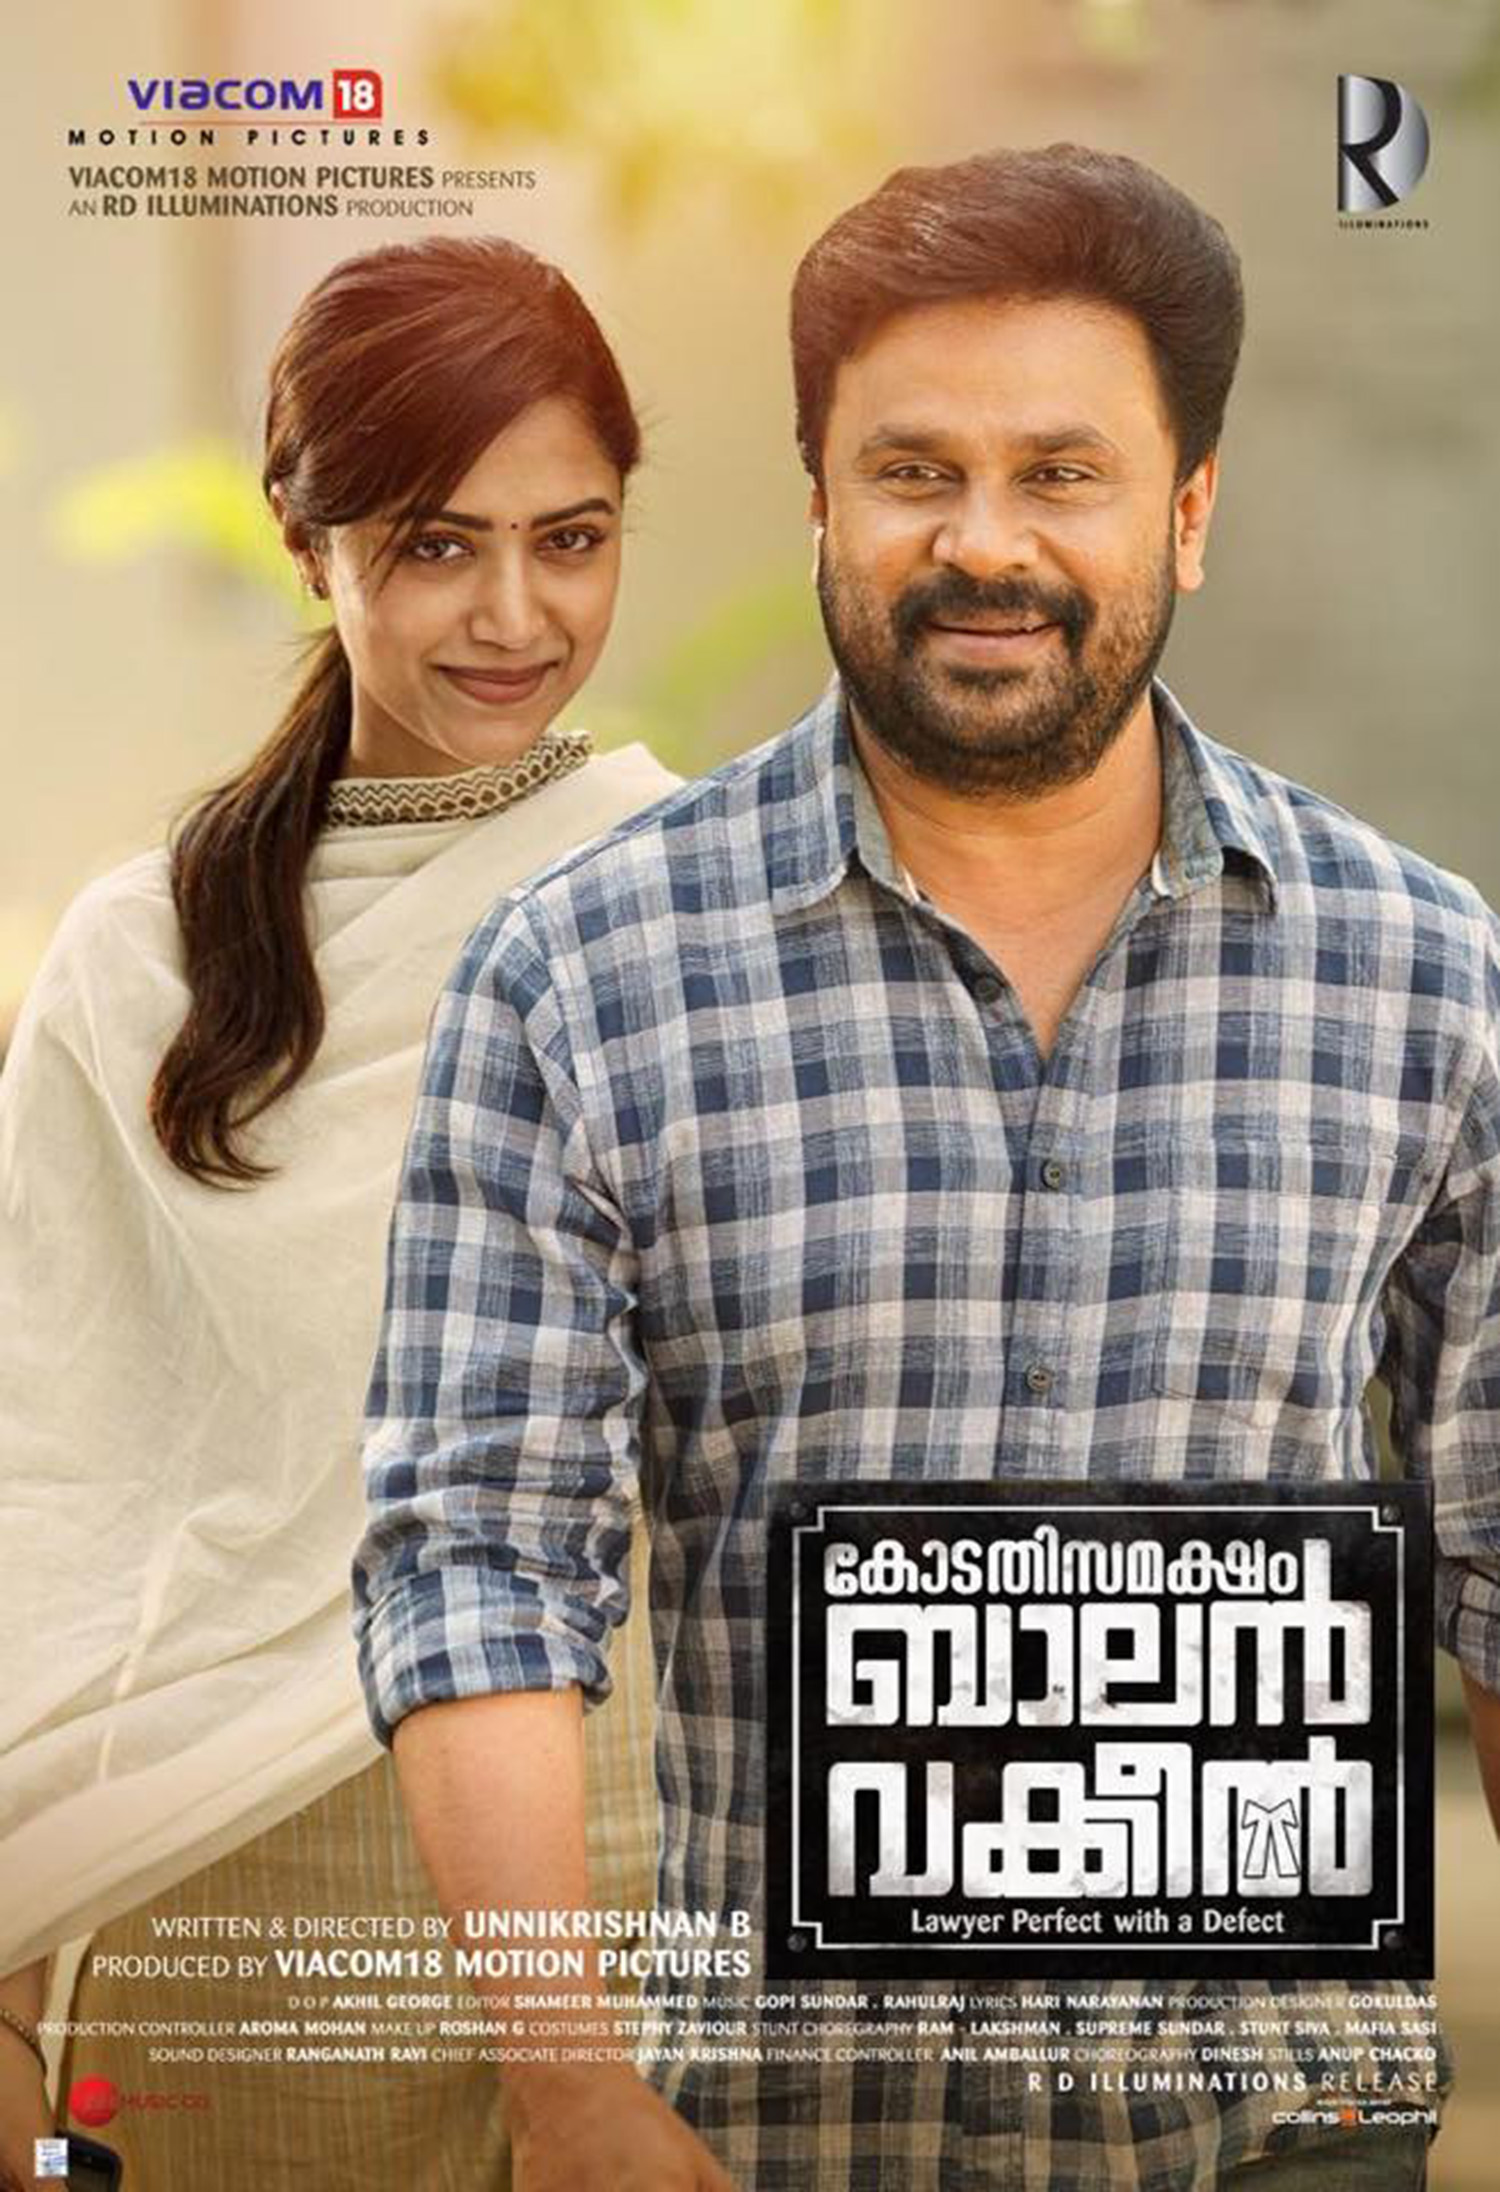 kodathi samaksham balan vakeel review,kodathi samaksham balan vakeel hit or flop,kodathi samaksham balan vakeel kerala box office report,kodathi samaksham balan vakeel malayalam movie review,kodathi samaksham balan vakeel movie review,dileep's kodathi samaksham balan vakeel review,b unnikrishnan's kodathi samaksham balan vakeel review,dileep b unnikrishnan movie,mamta mohandas,dileep mamta mohandas kodathi samaksham balan vakeel review,kodathi samaksham balan vakeel poster,kodathi samaksham balan vakeel stills,dileep in kodathi samaksham balan vakeel,dileep's latest movie stills